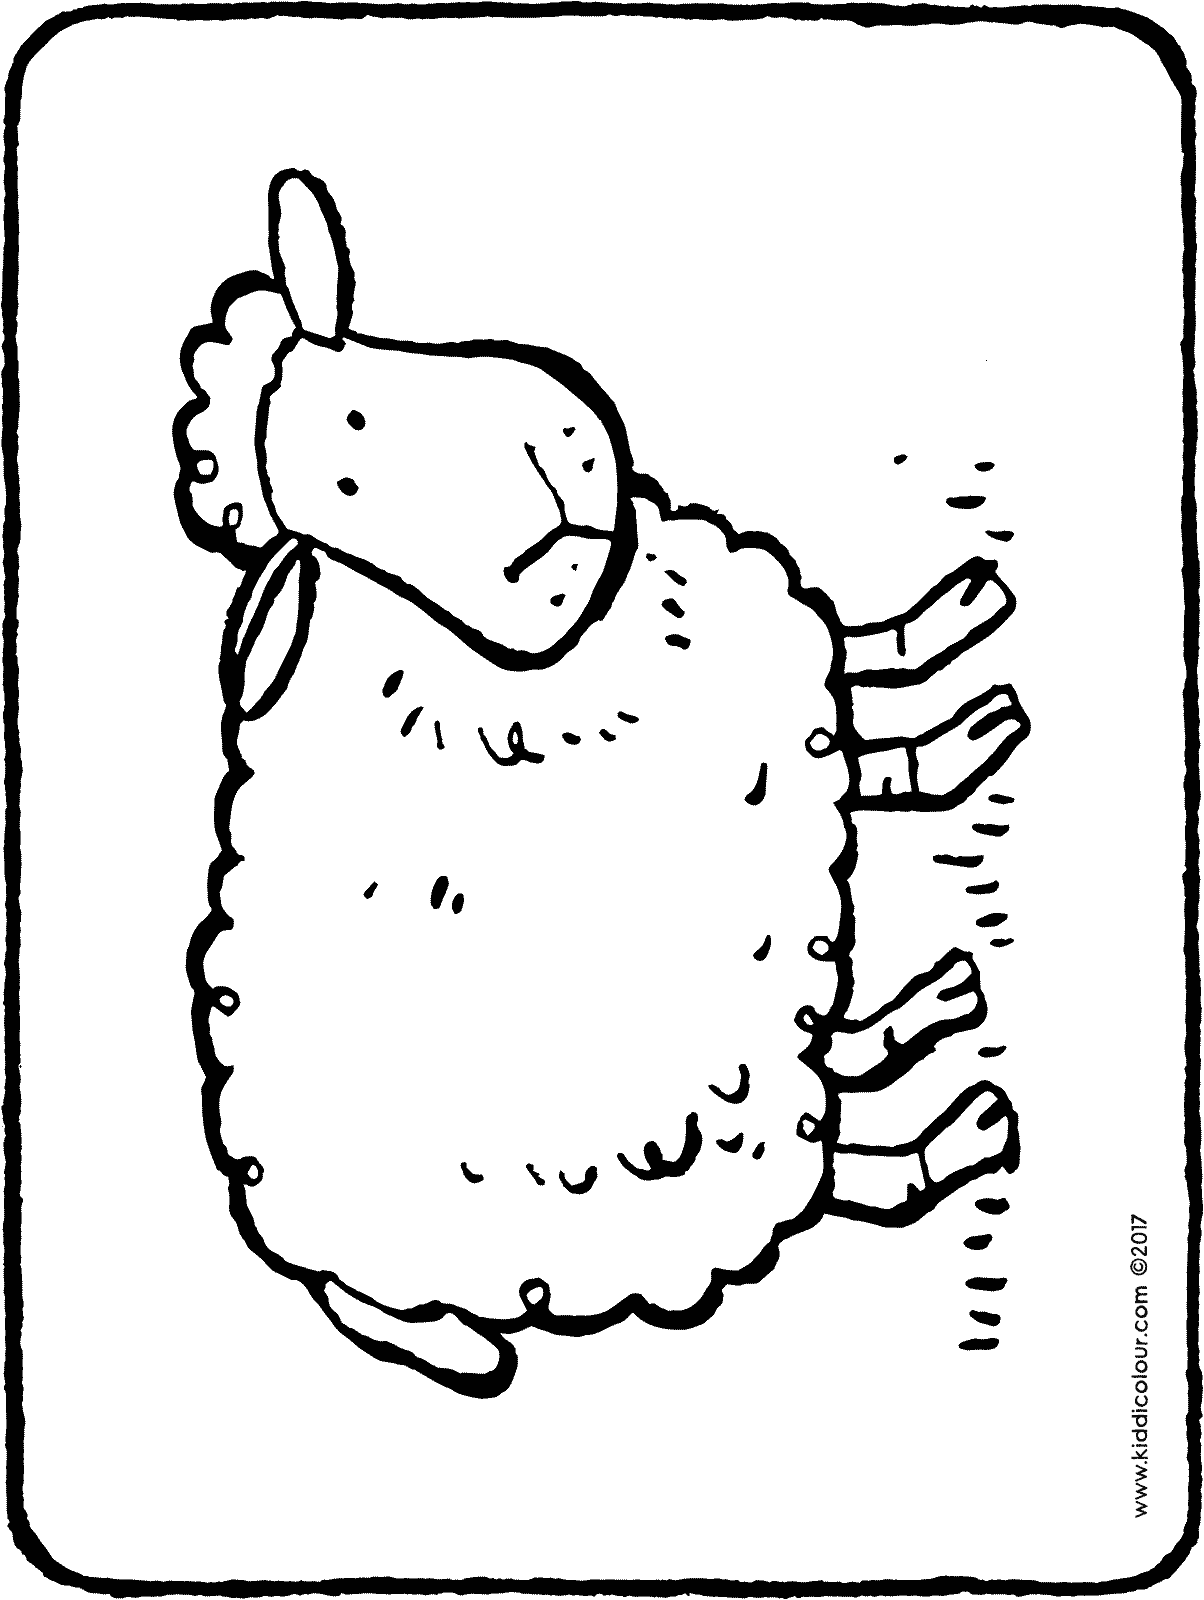 sheep colouring page drawing picture 01H